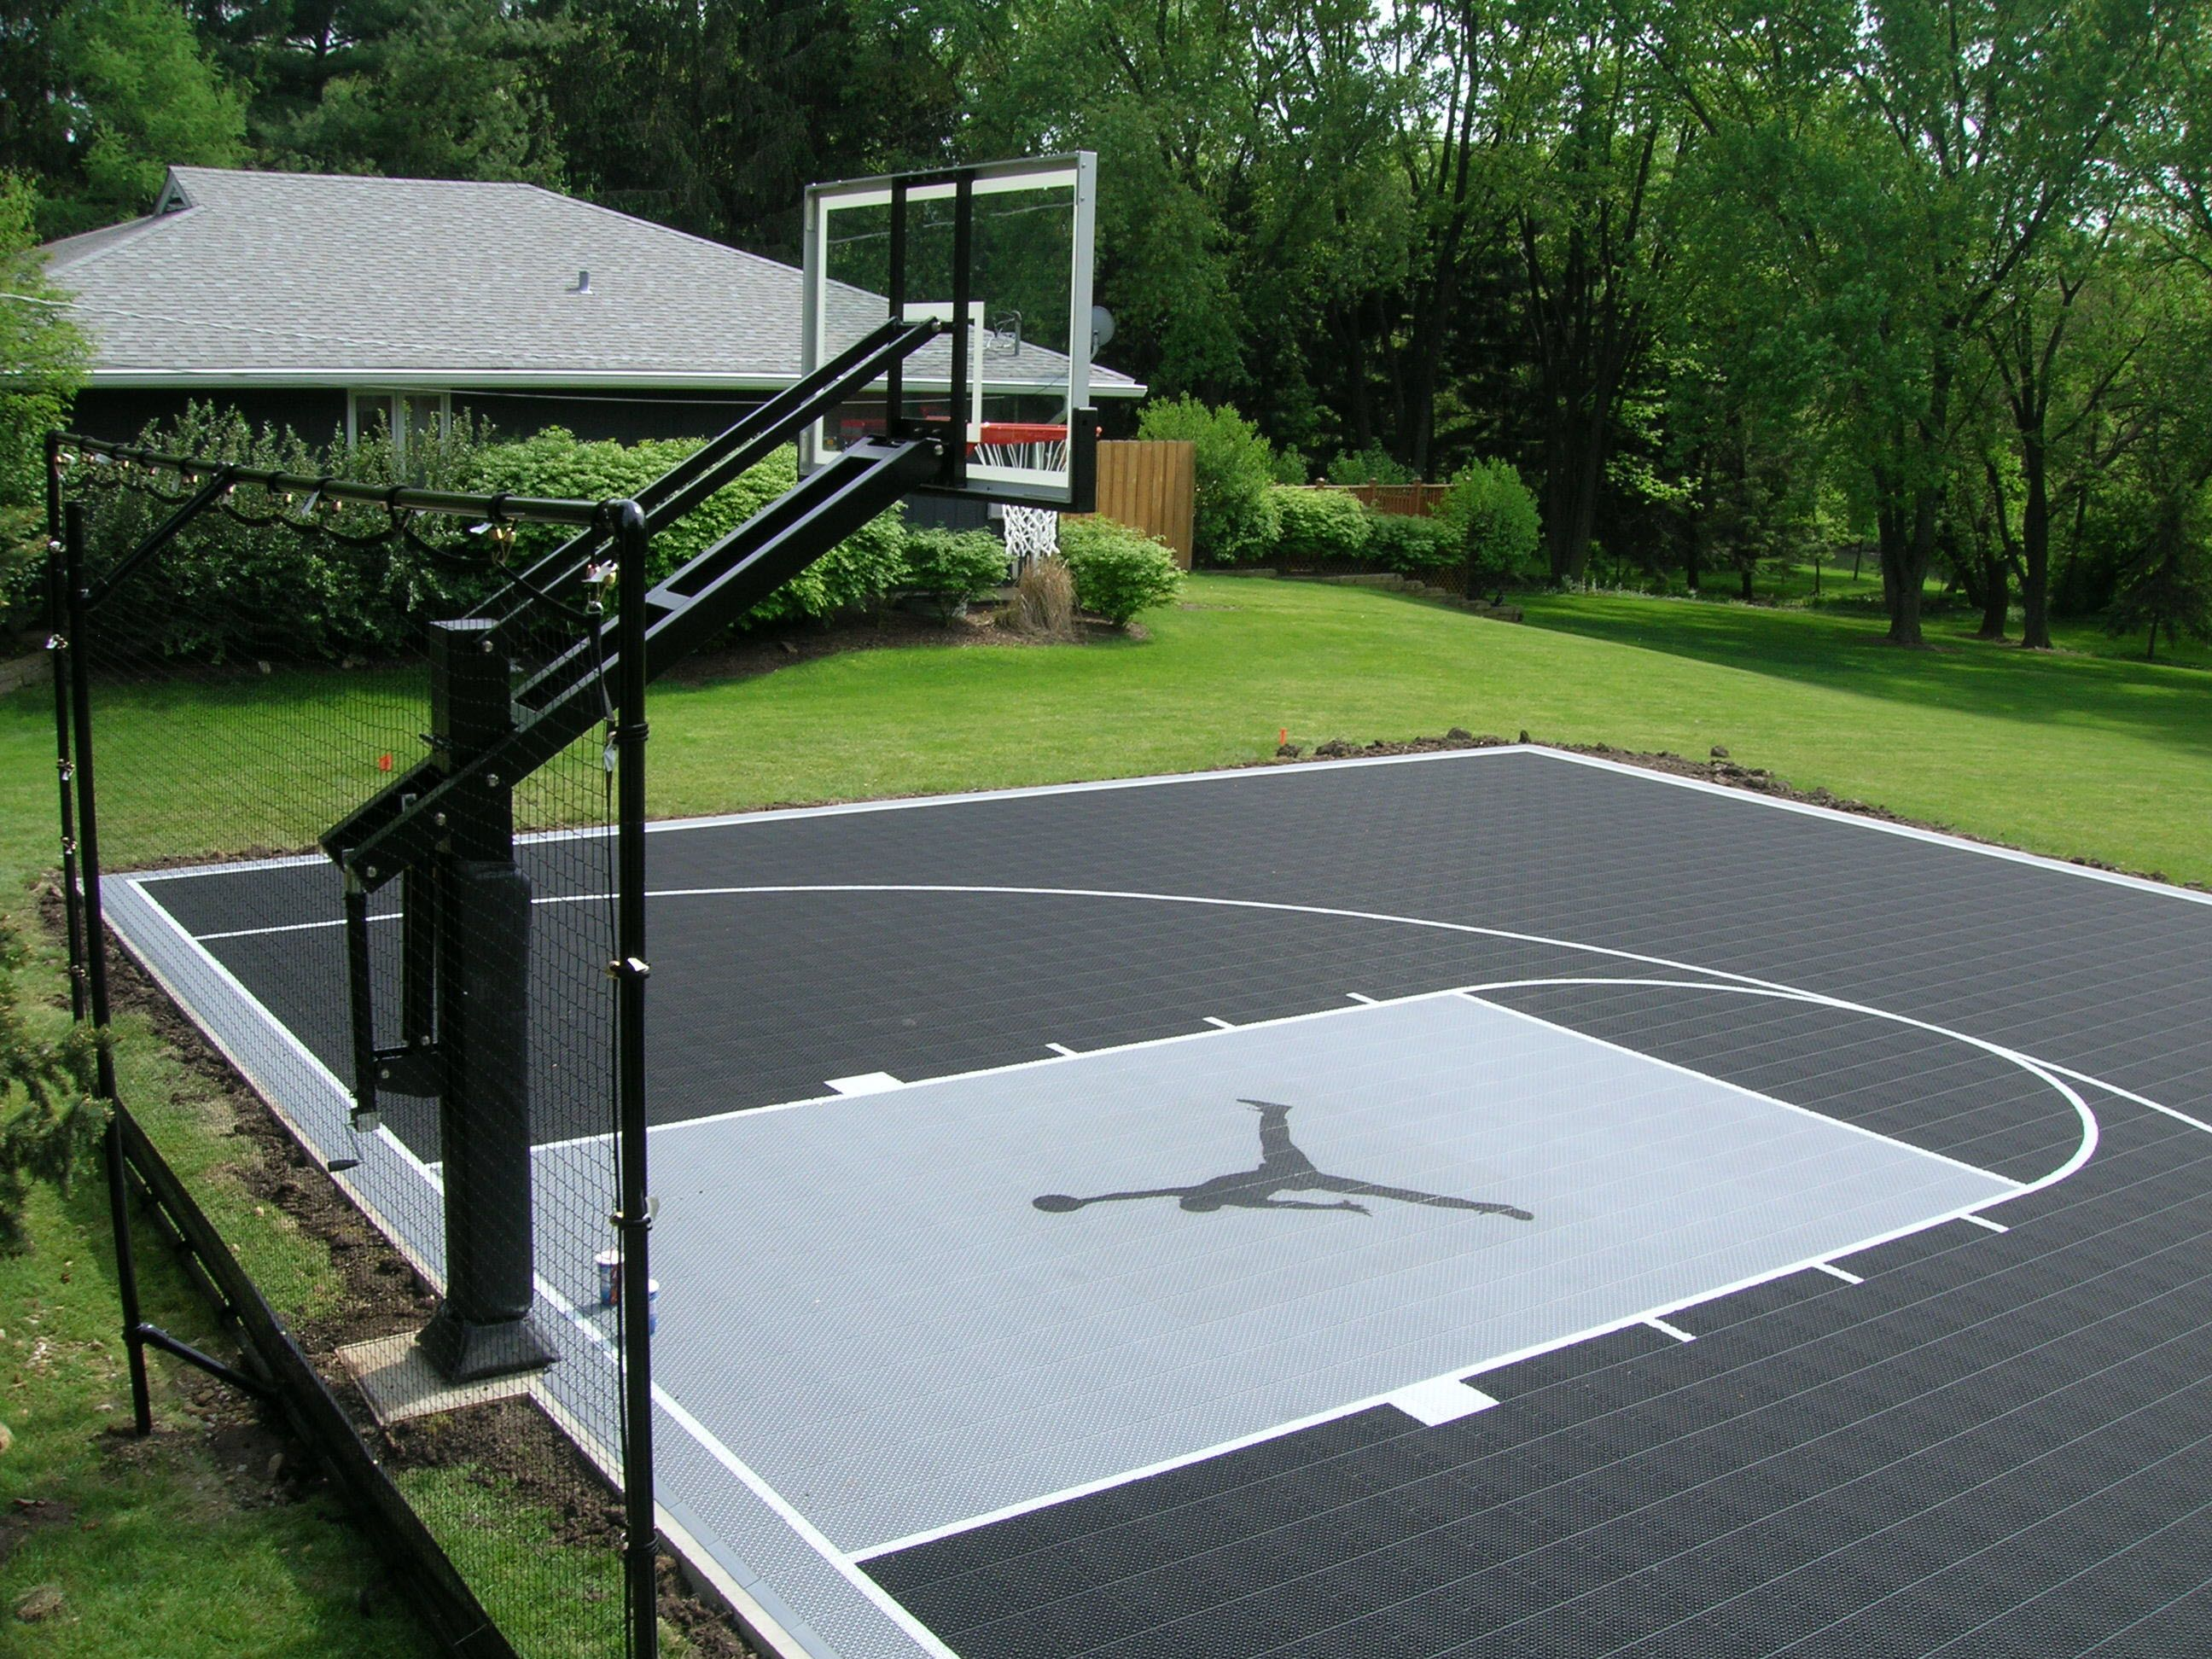 Jordans12 39 on buckets basketball court and backyard for Indoor basketball court flooring cost